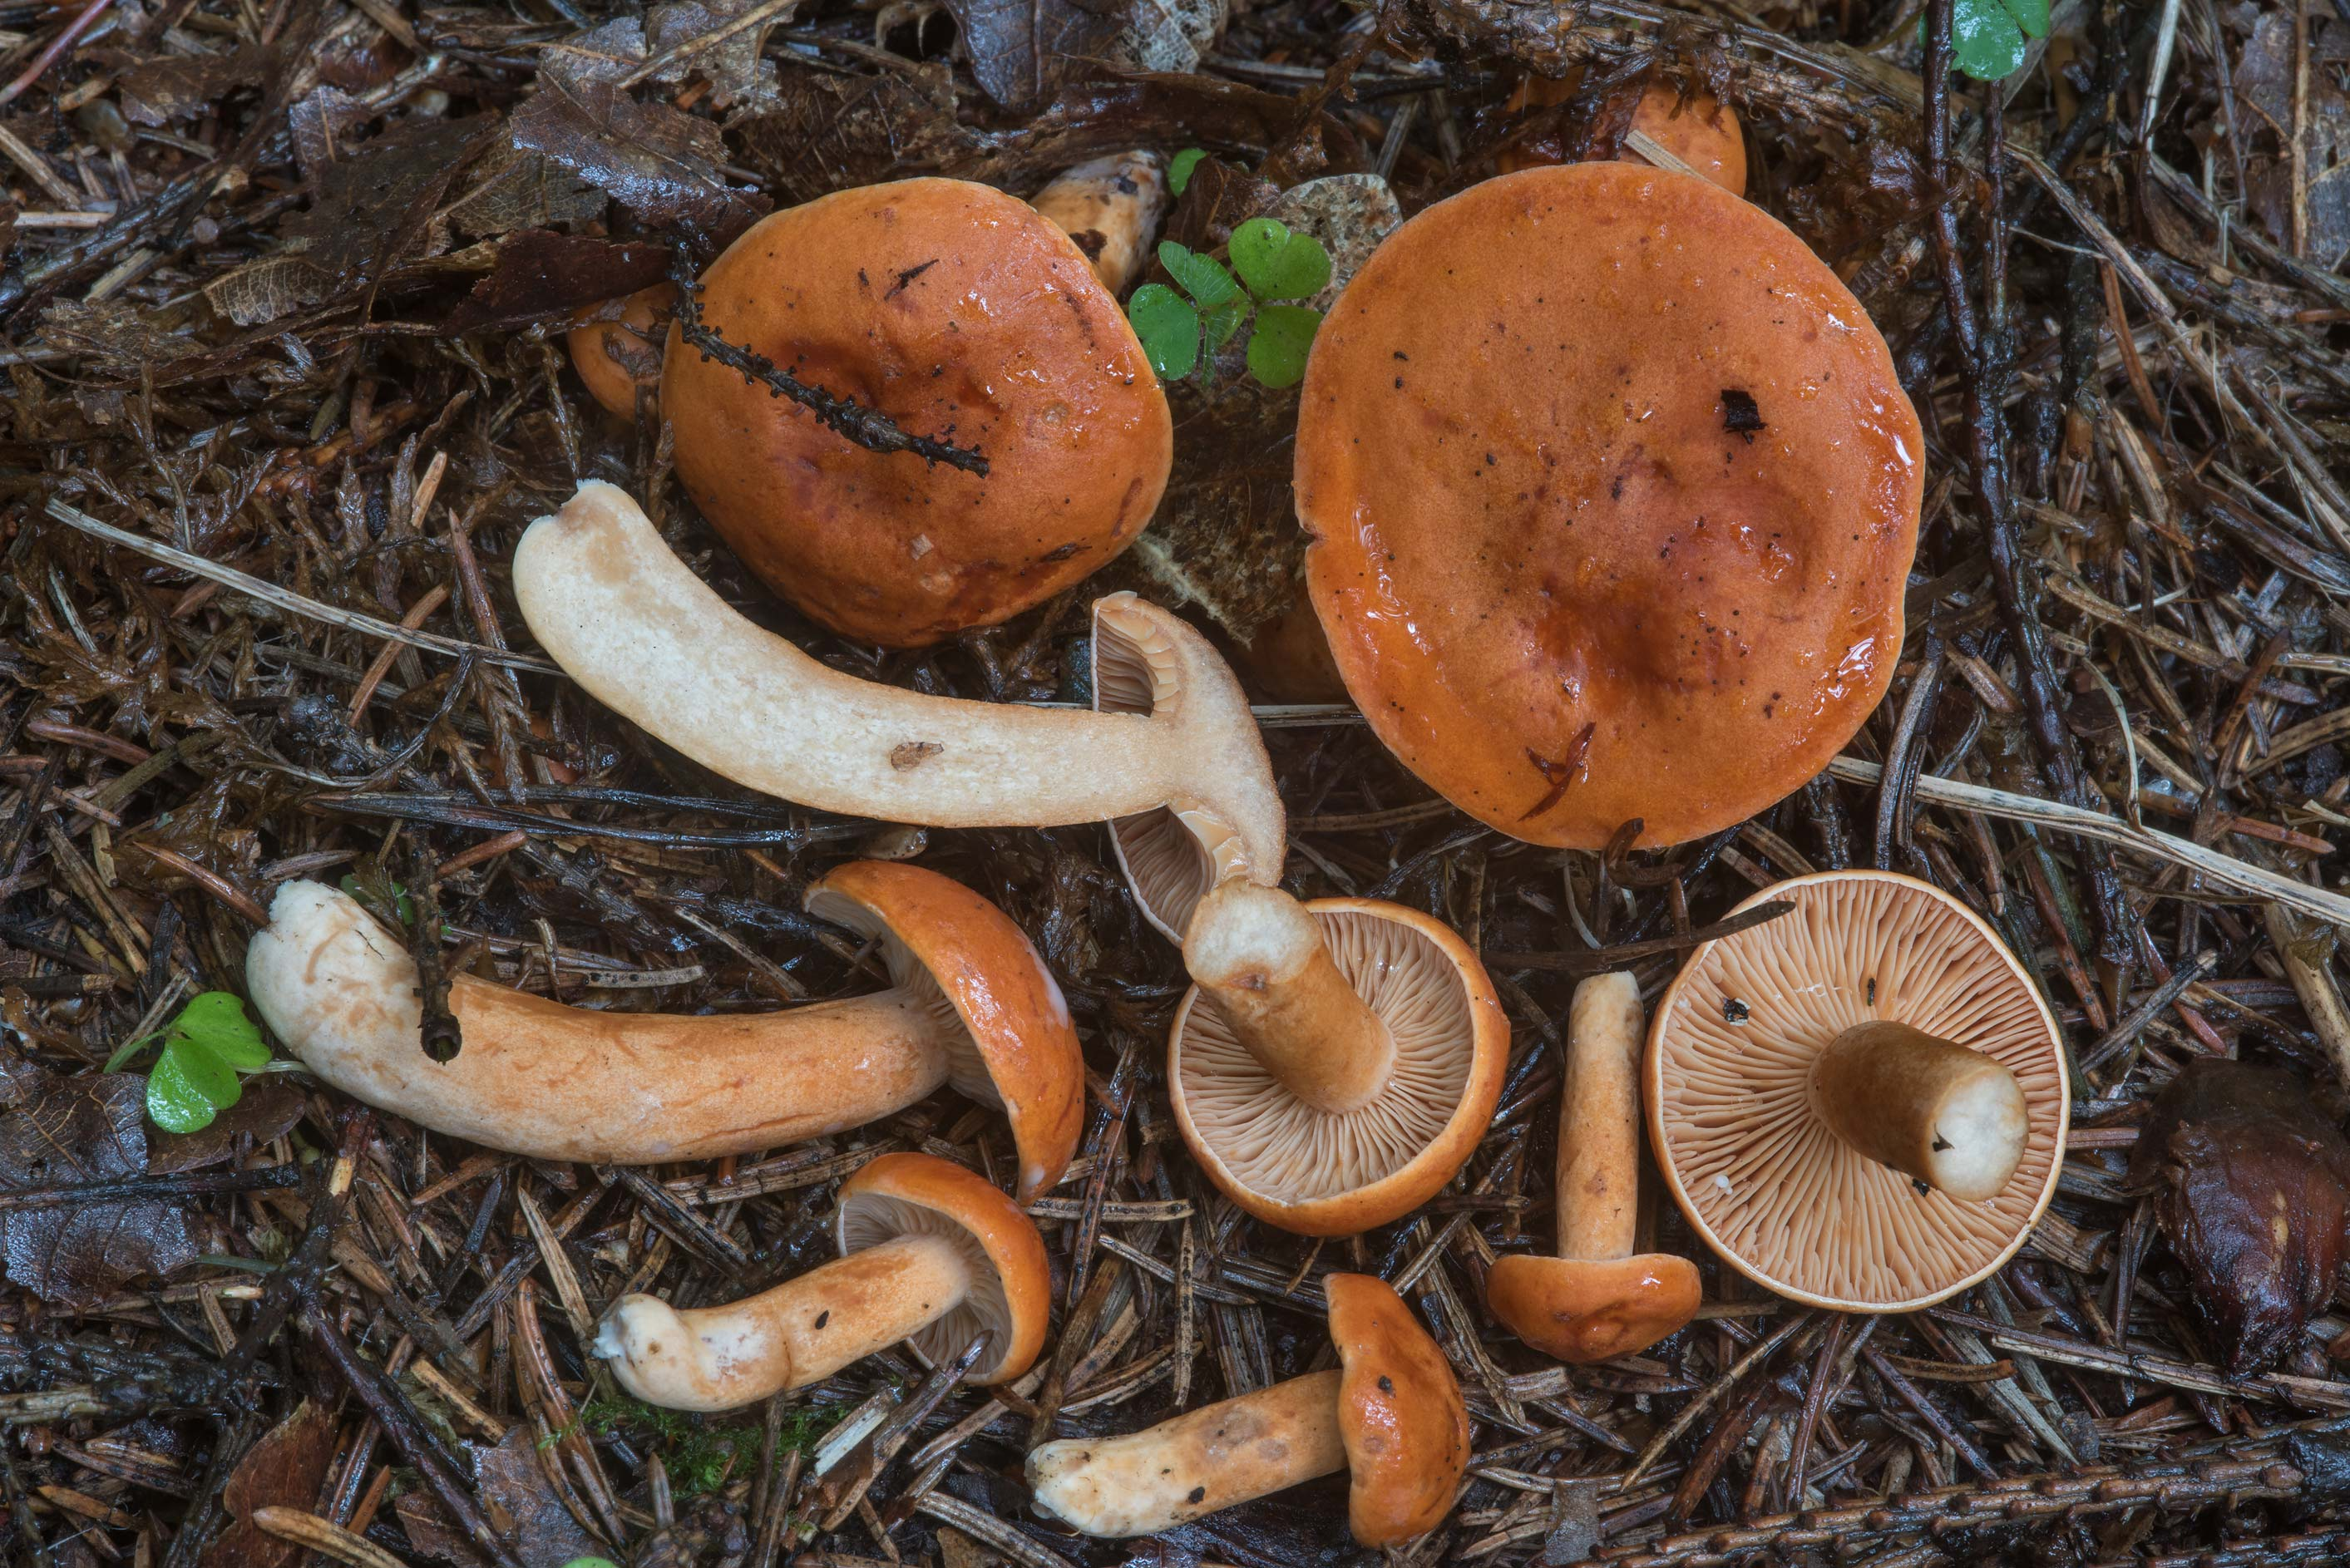 Orange milkcap mushrooms (Lactarius aurantiacus...a suburb of St.Petersburg, Russia